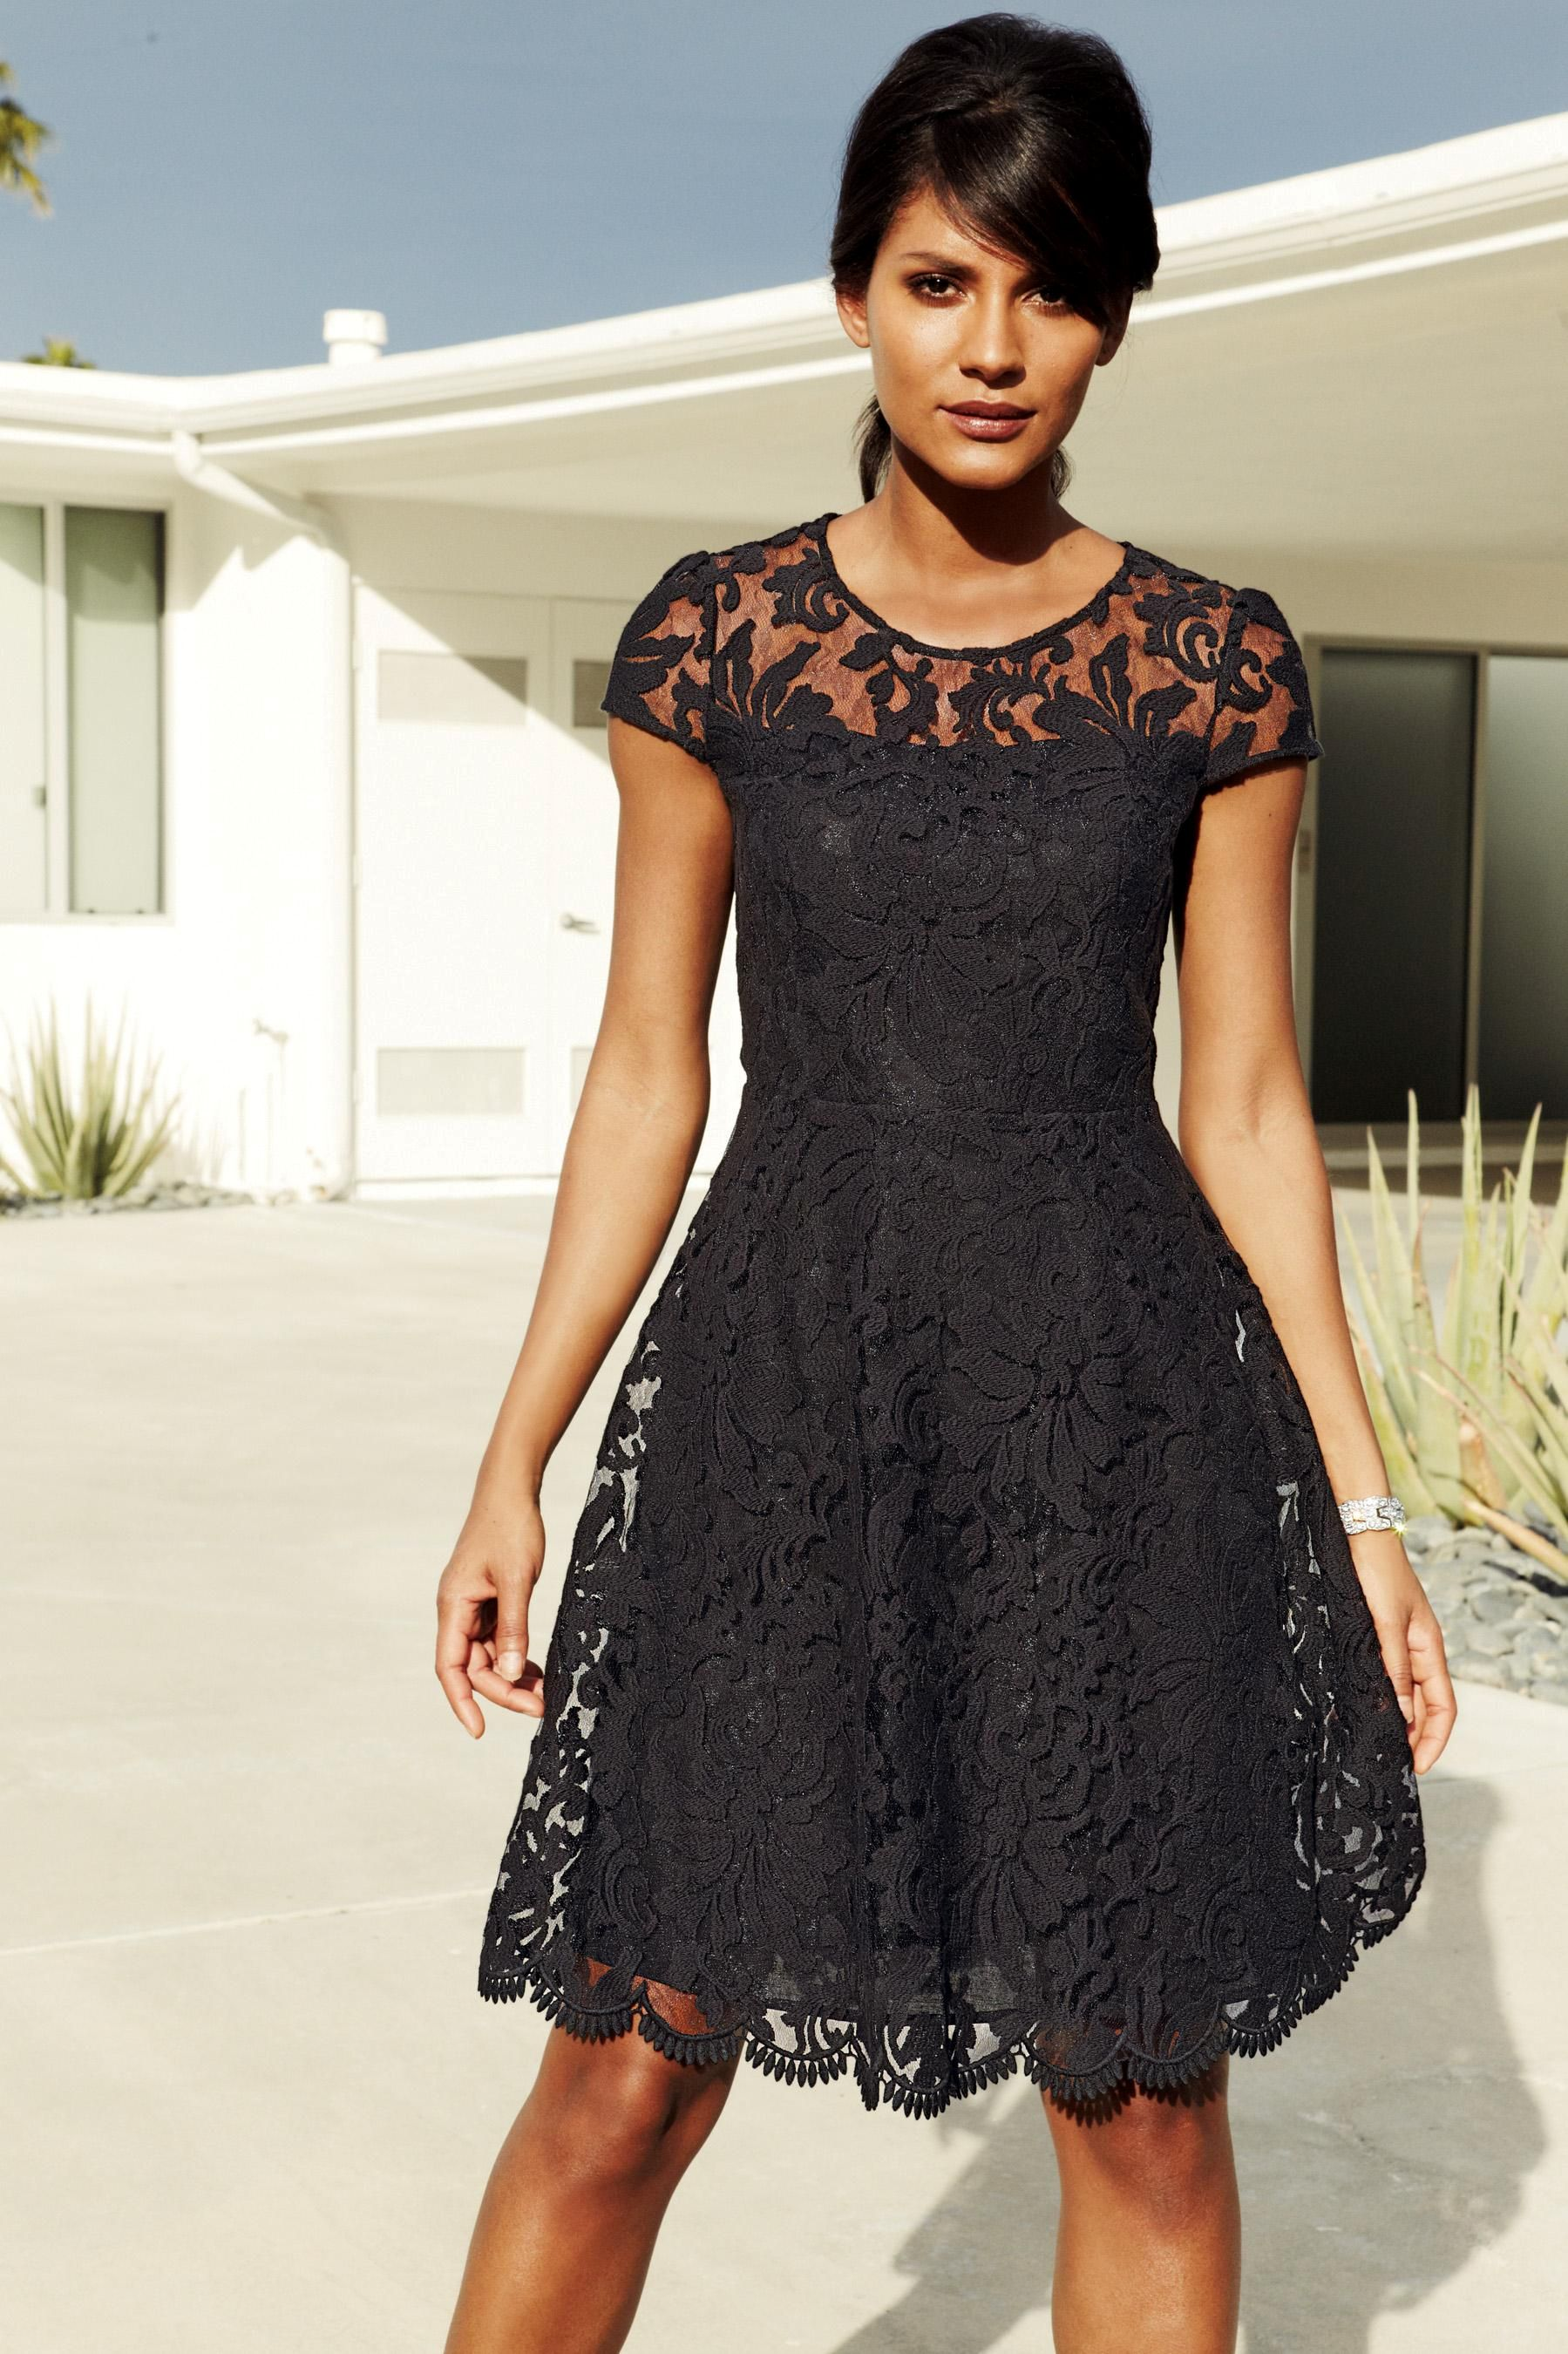 Discover lace dresses for women with ASOS. From subtle long lace dresses for the day to black short lace dresses, find the perfect one to suit your style.